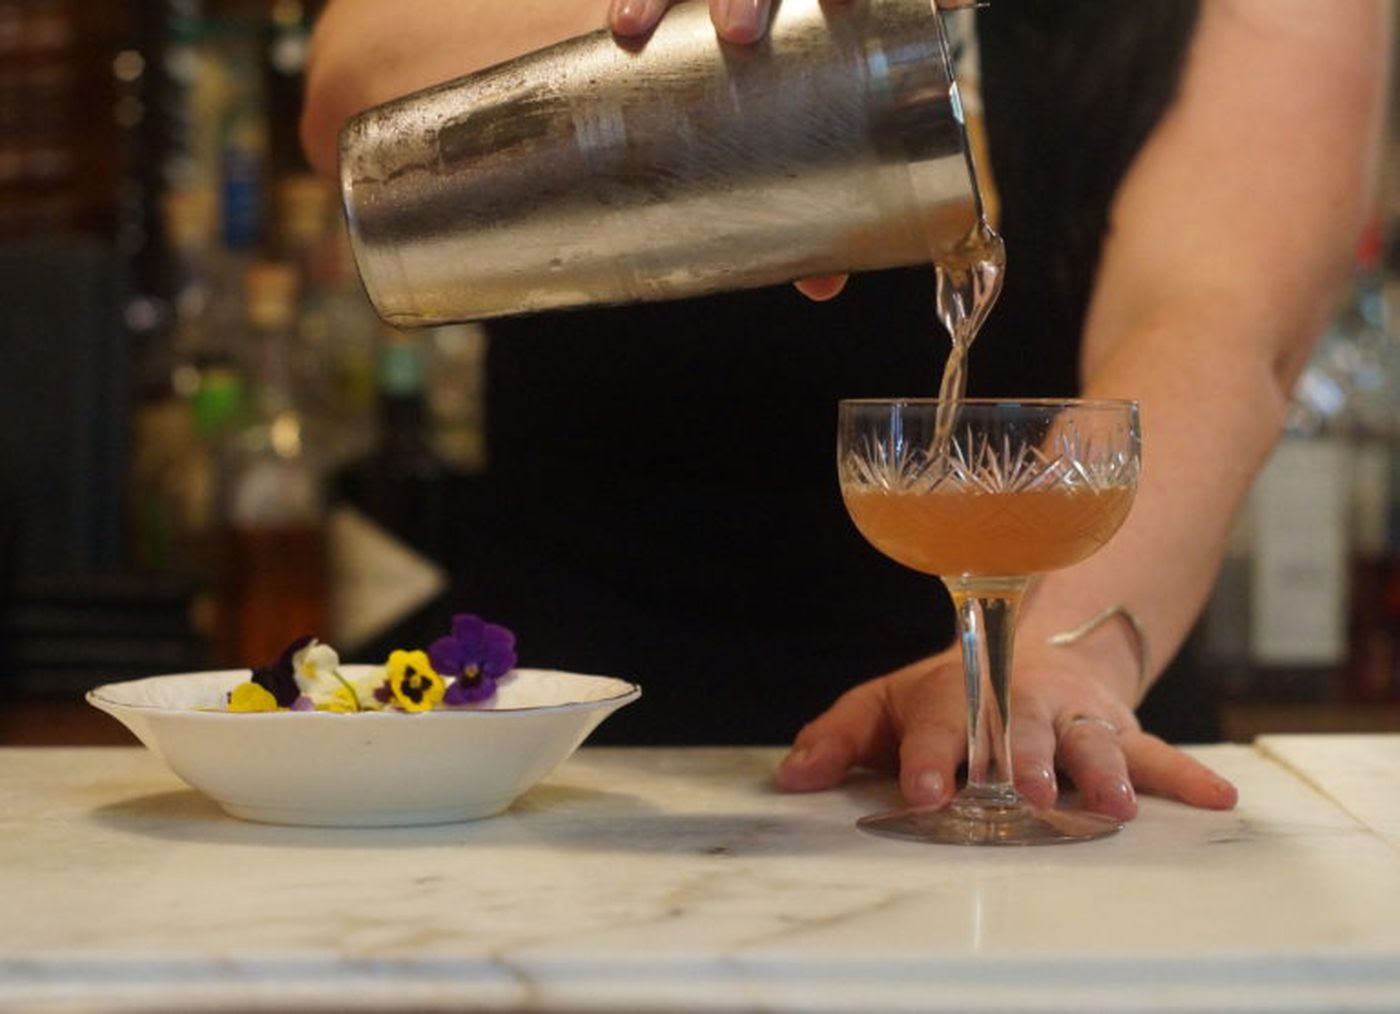 Heather Rodkey, of Rex 1516, Cafe Ynez, and Jet Wine Bar, pours a cocktail.